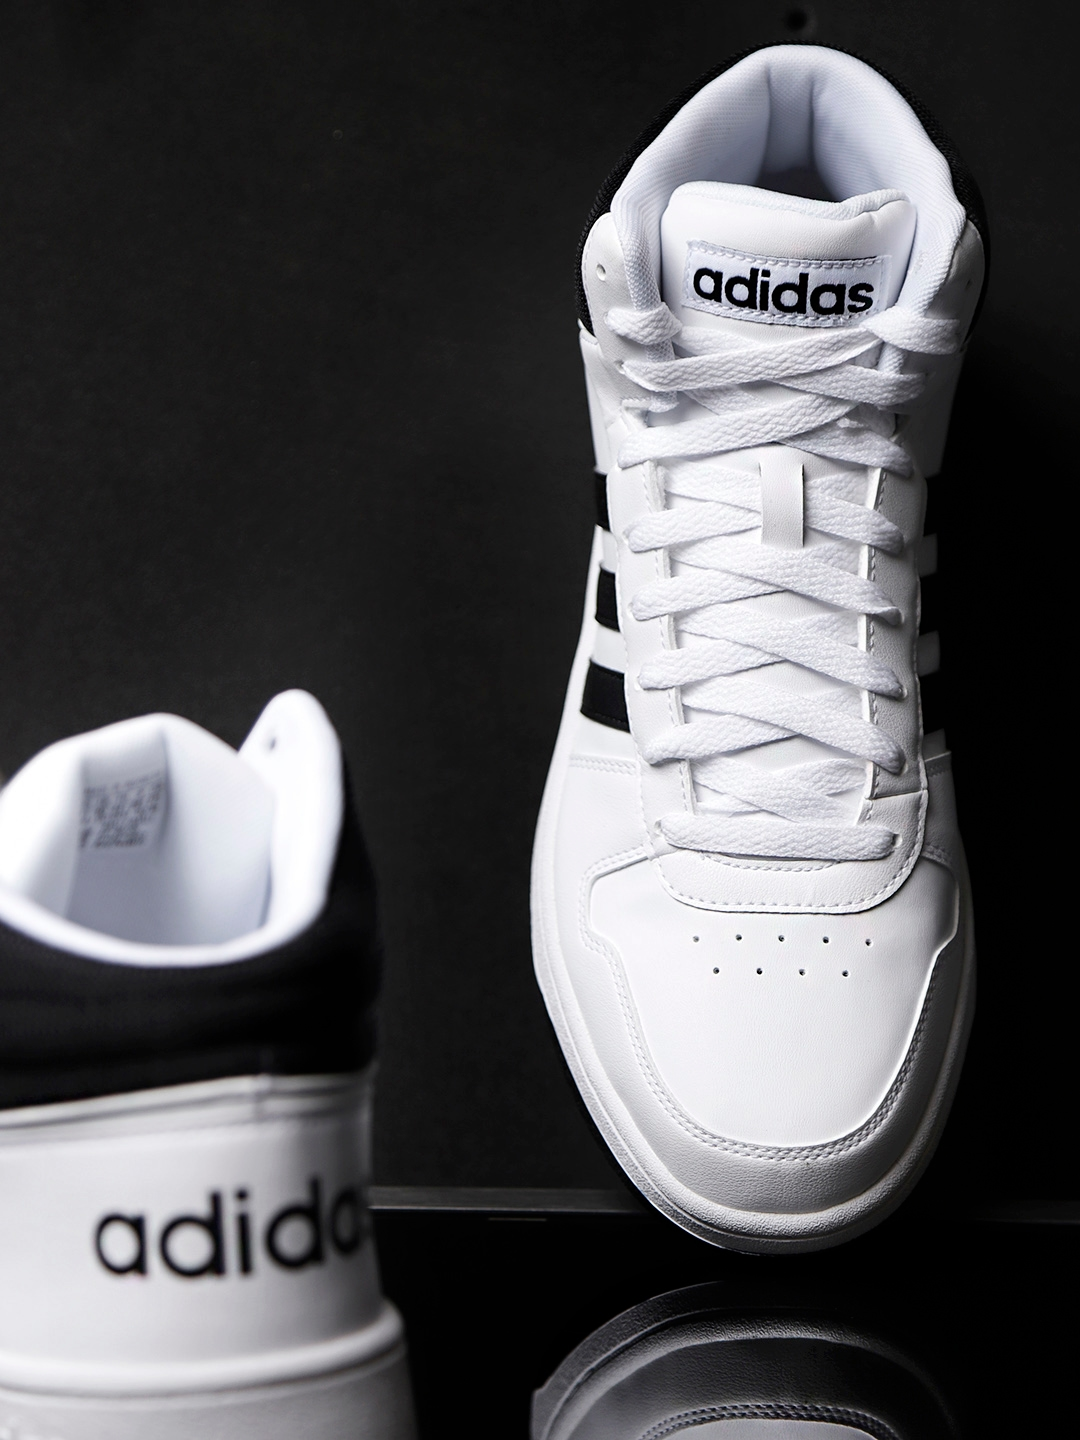 Buy ADIDAS Men White Hoops 2.0 Mid Top Basketball Shoes - Sports ... a2cd039ed146